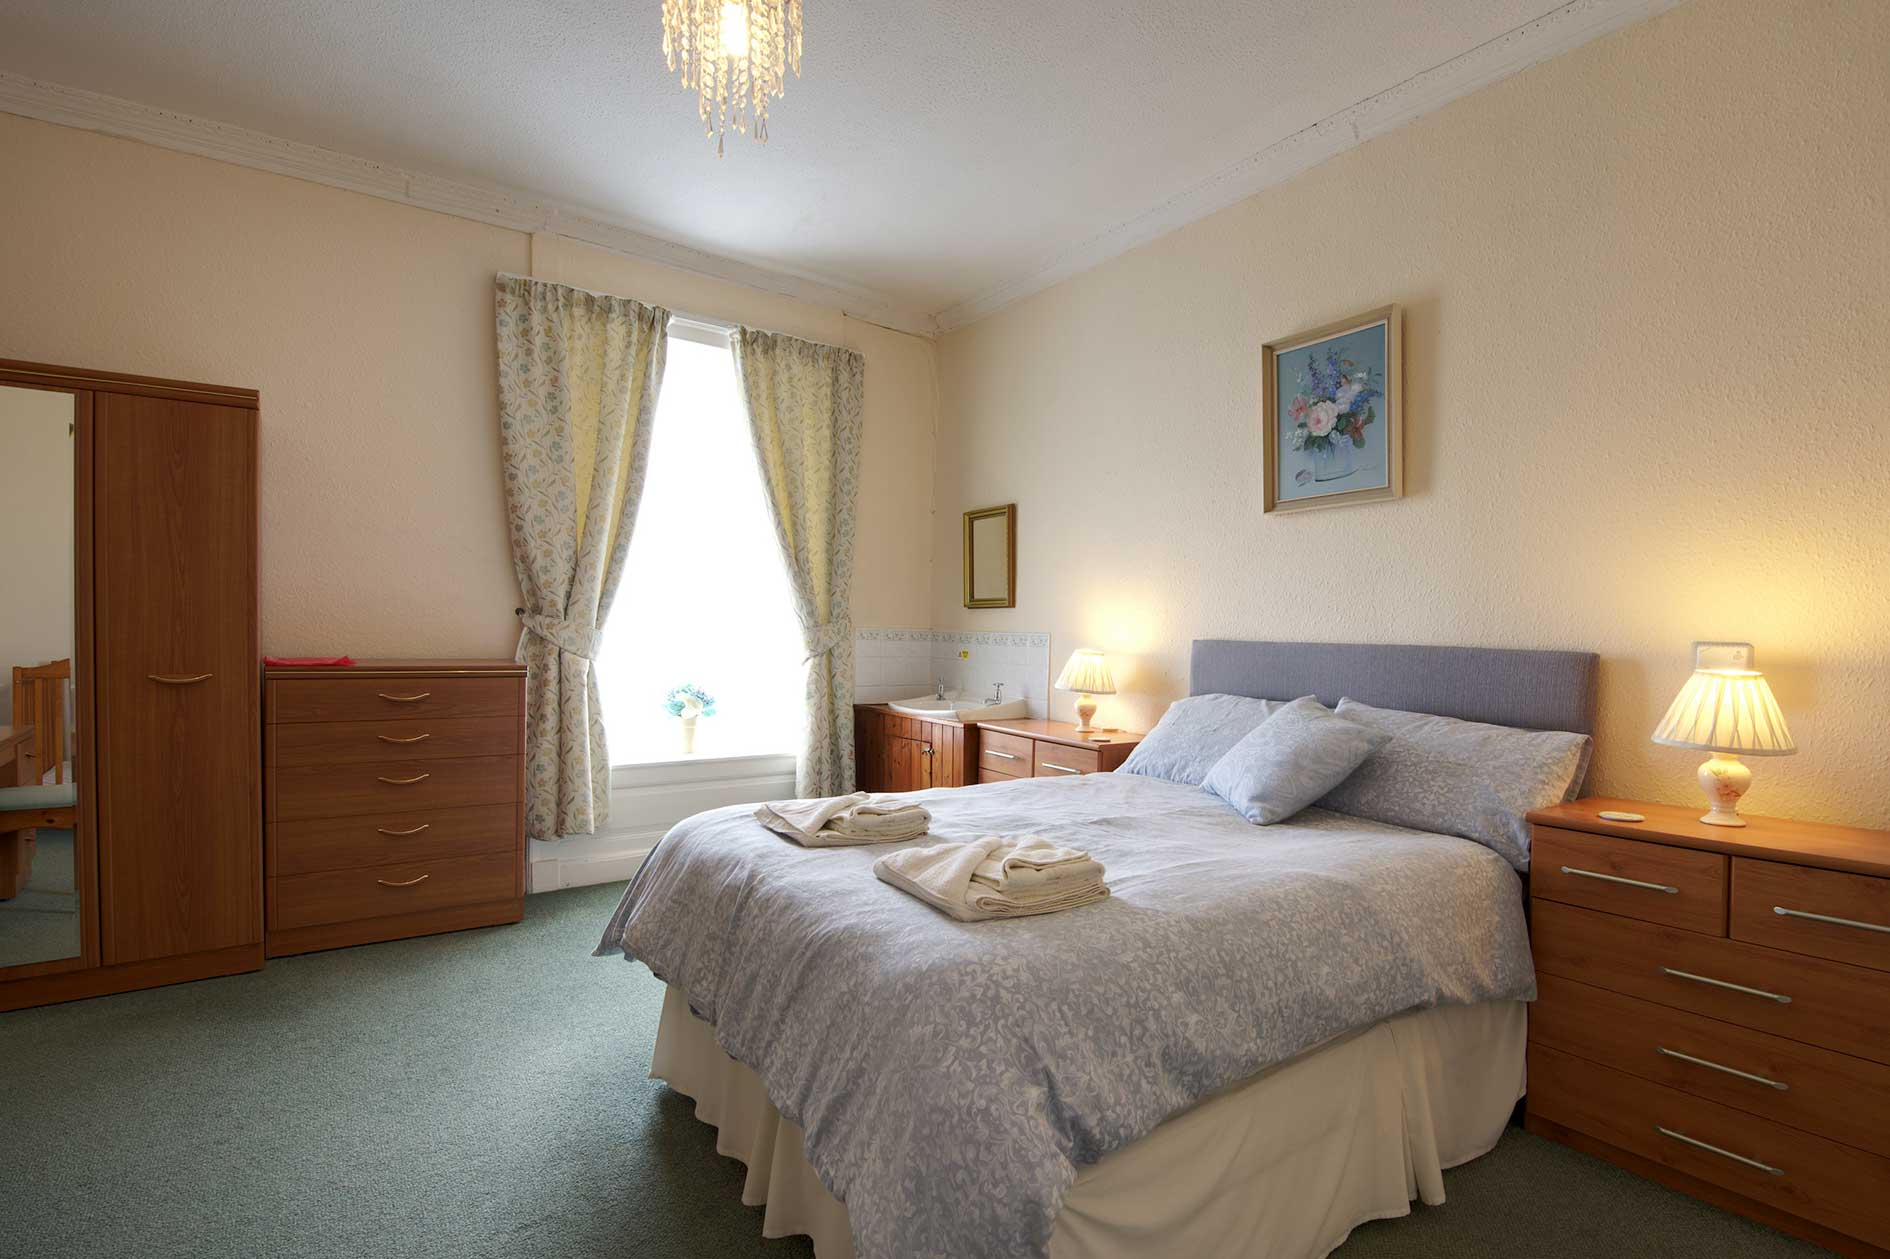 Light Bedroom With Double Bed And Wooden Furniture